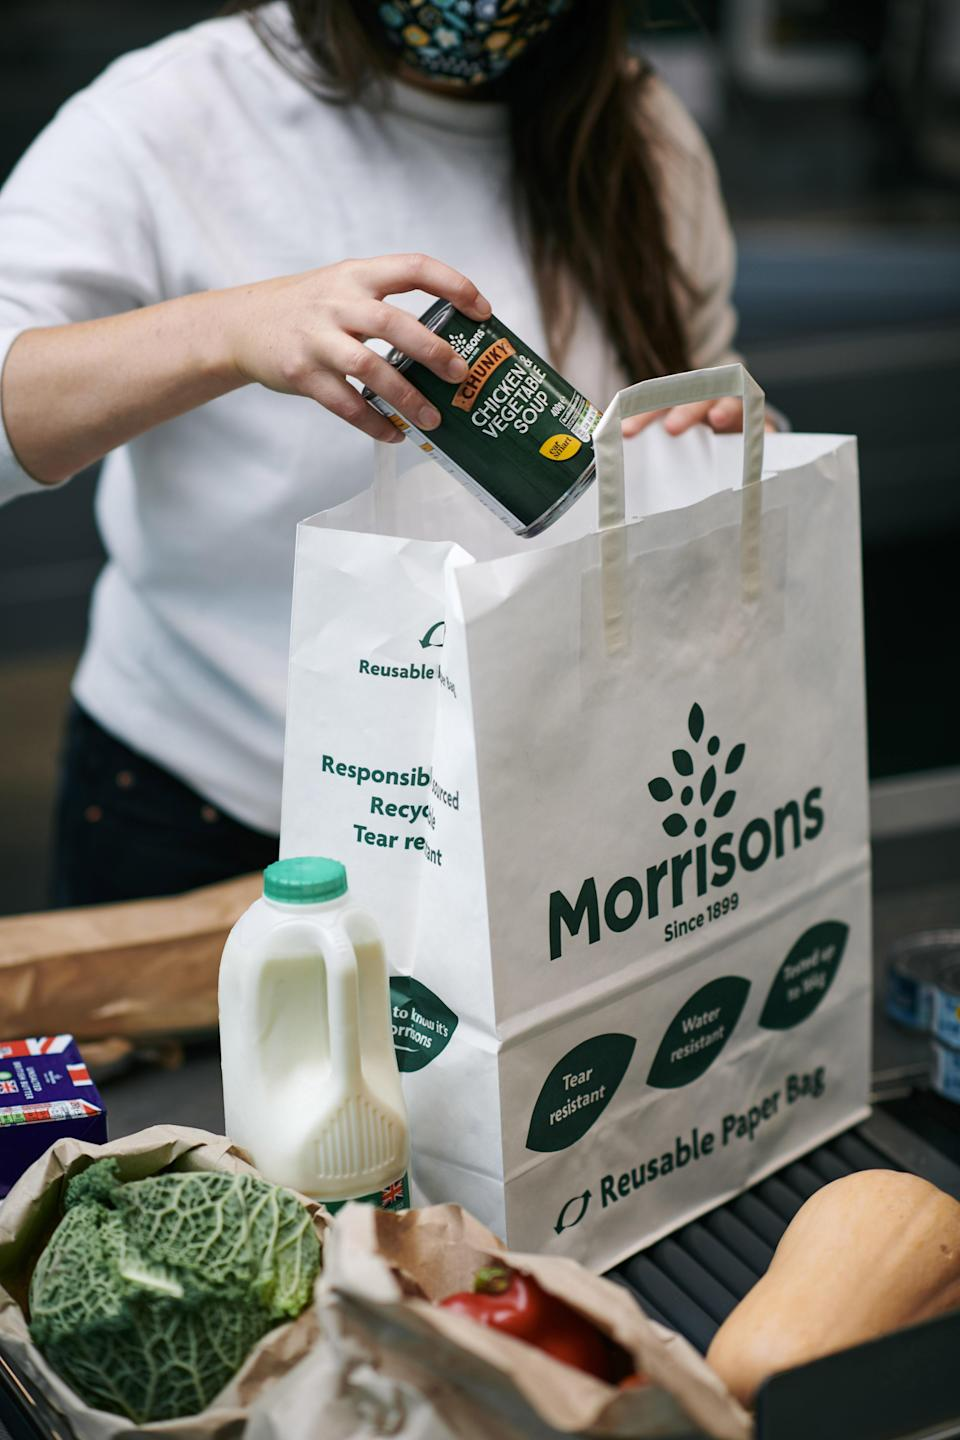 Morrisons has said customers will be able to buy 30p paper bags